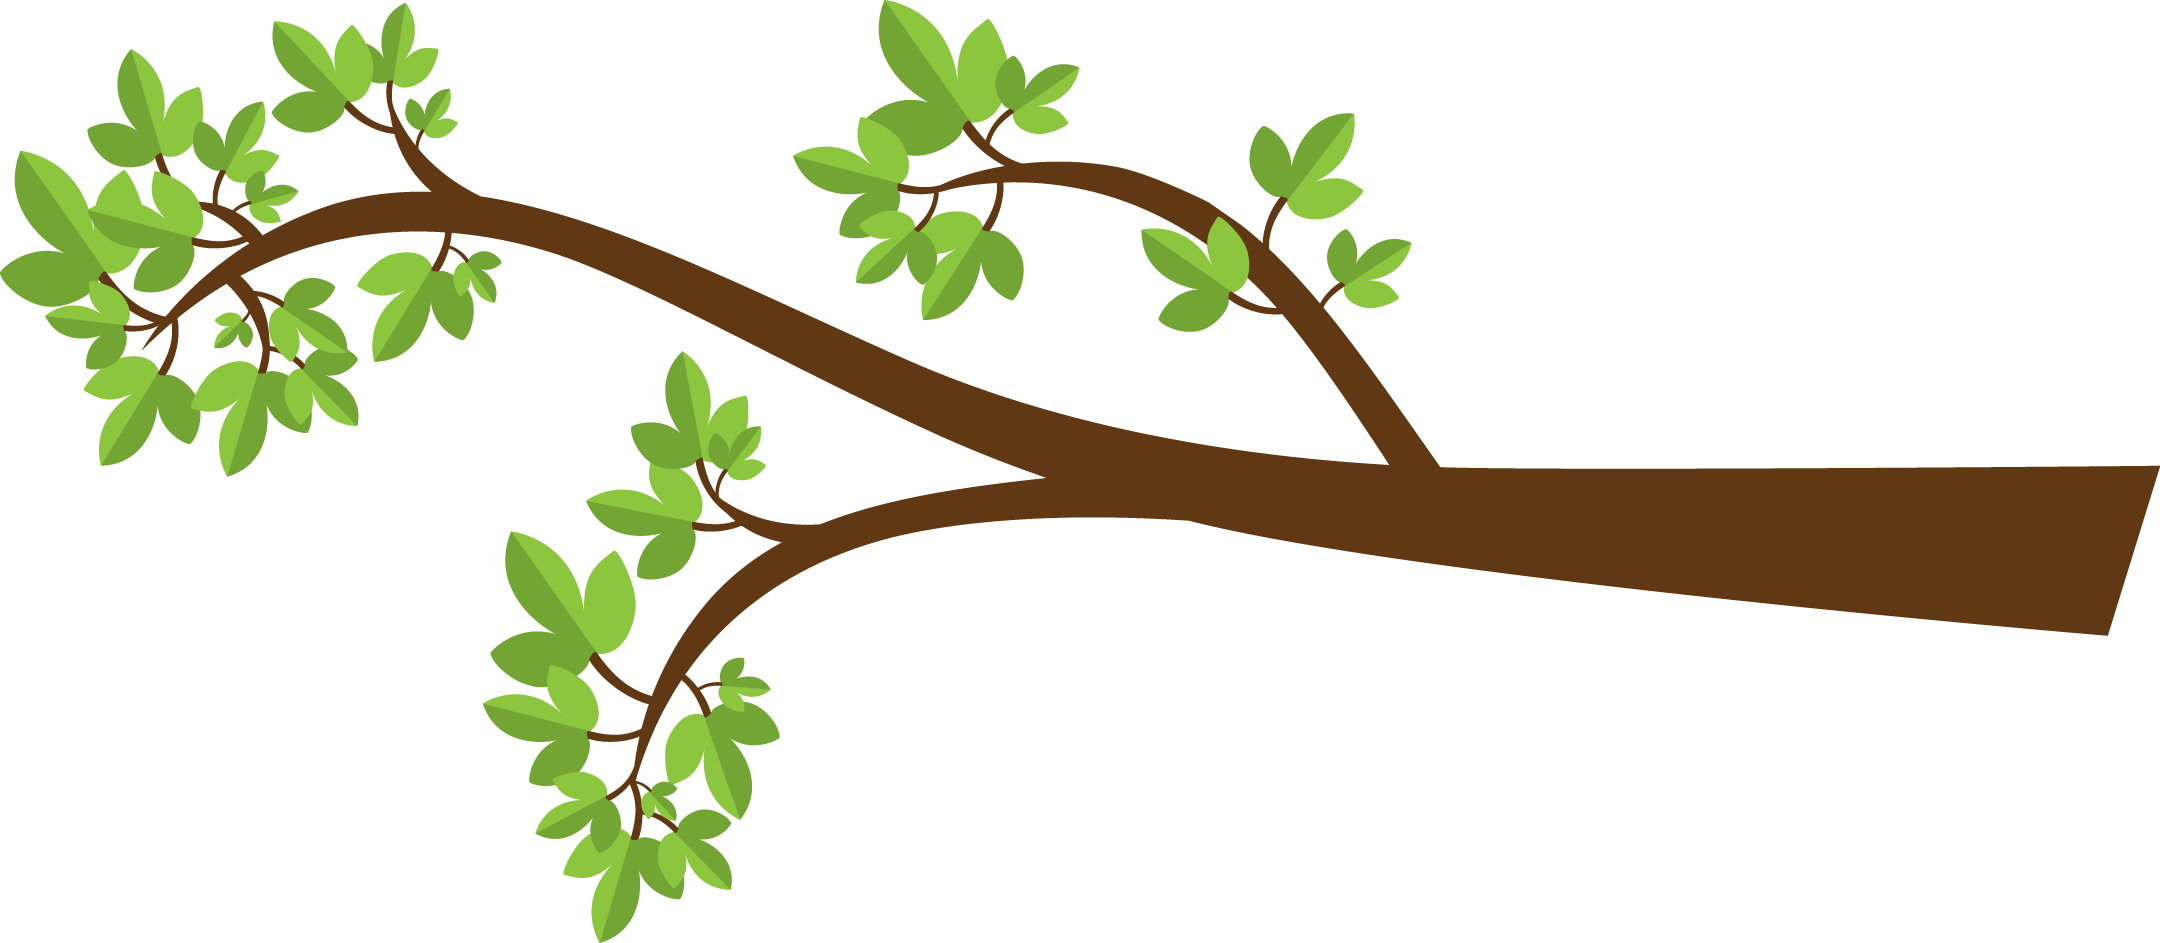 Tree limb fall branch. Trail clipart forest scene